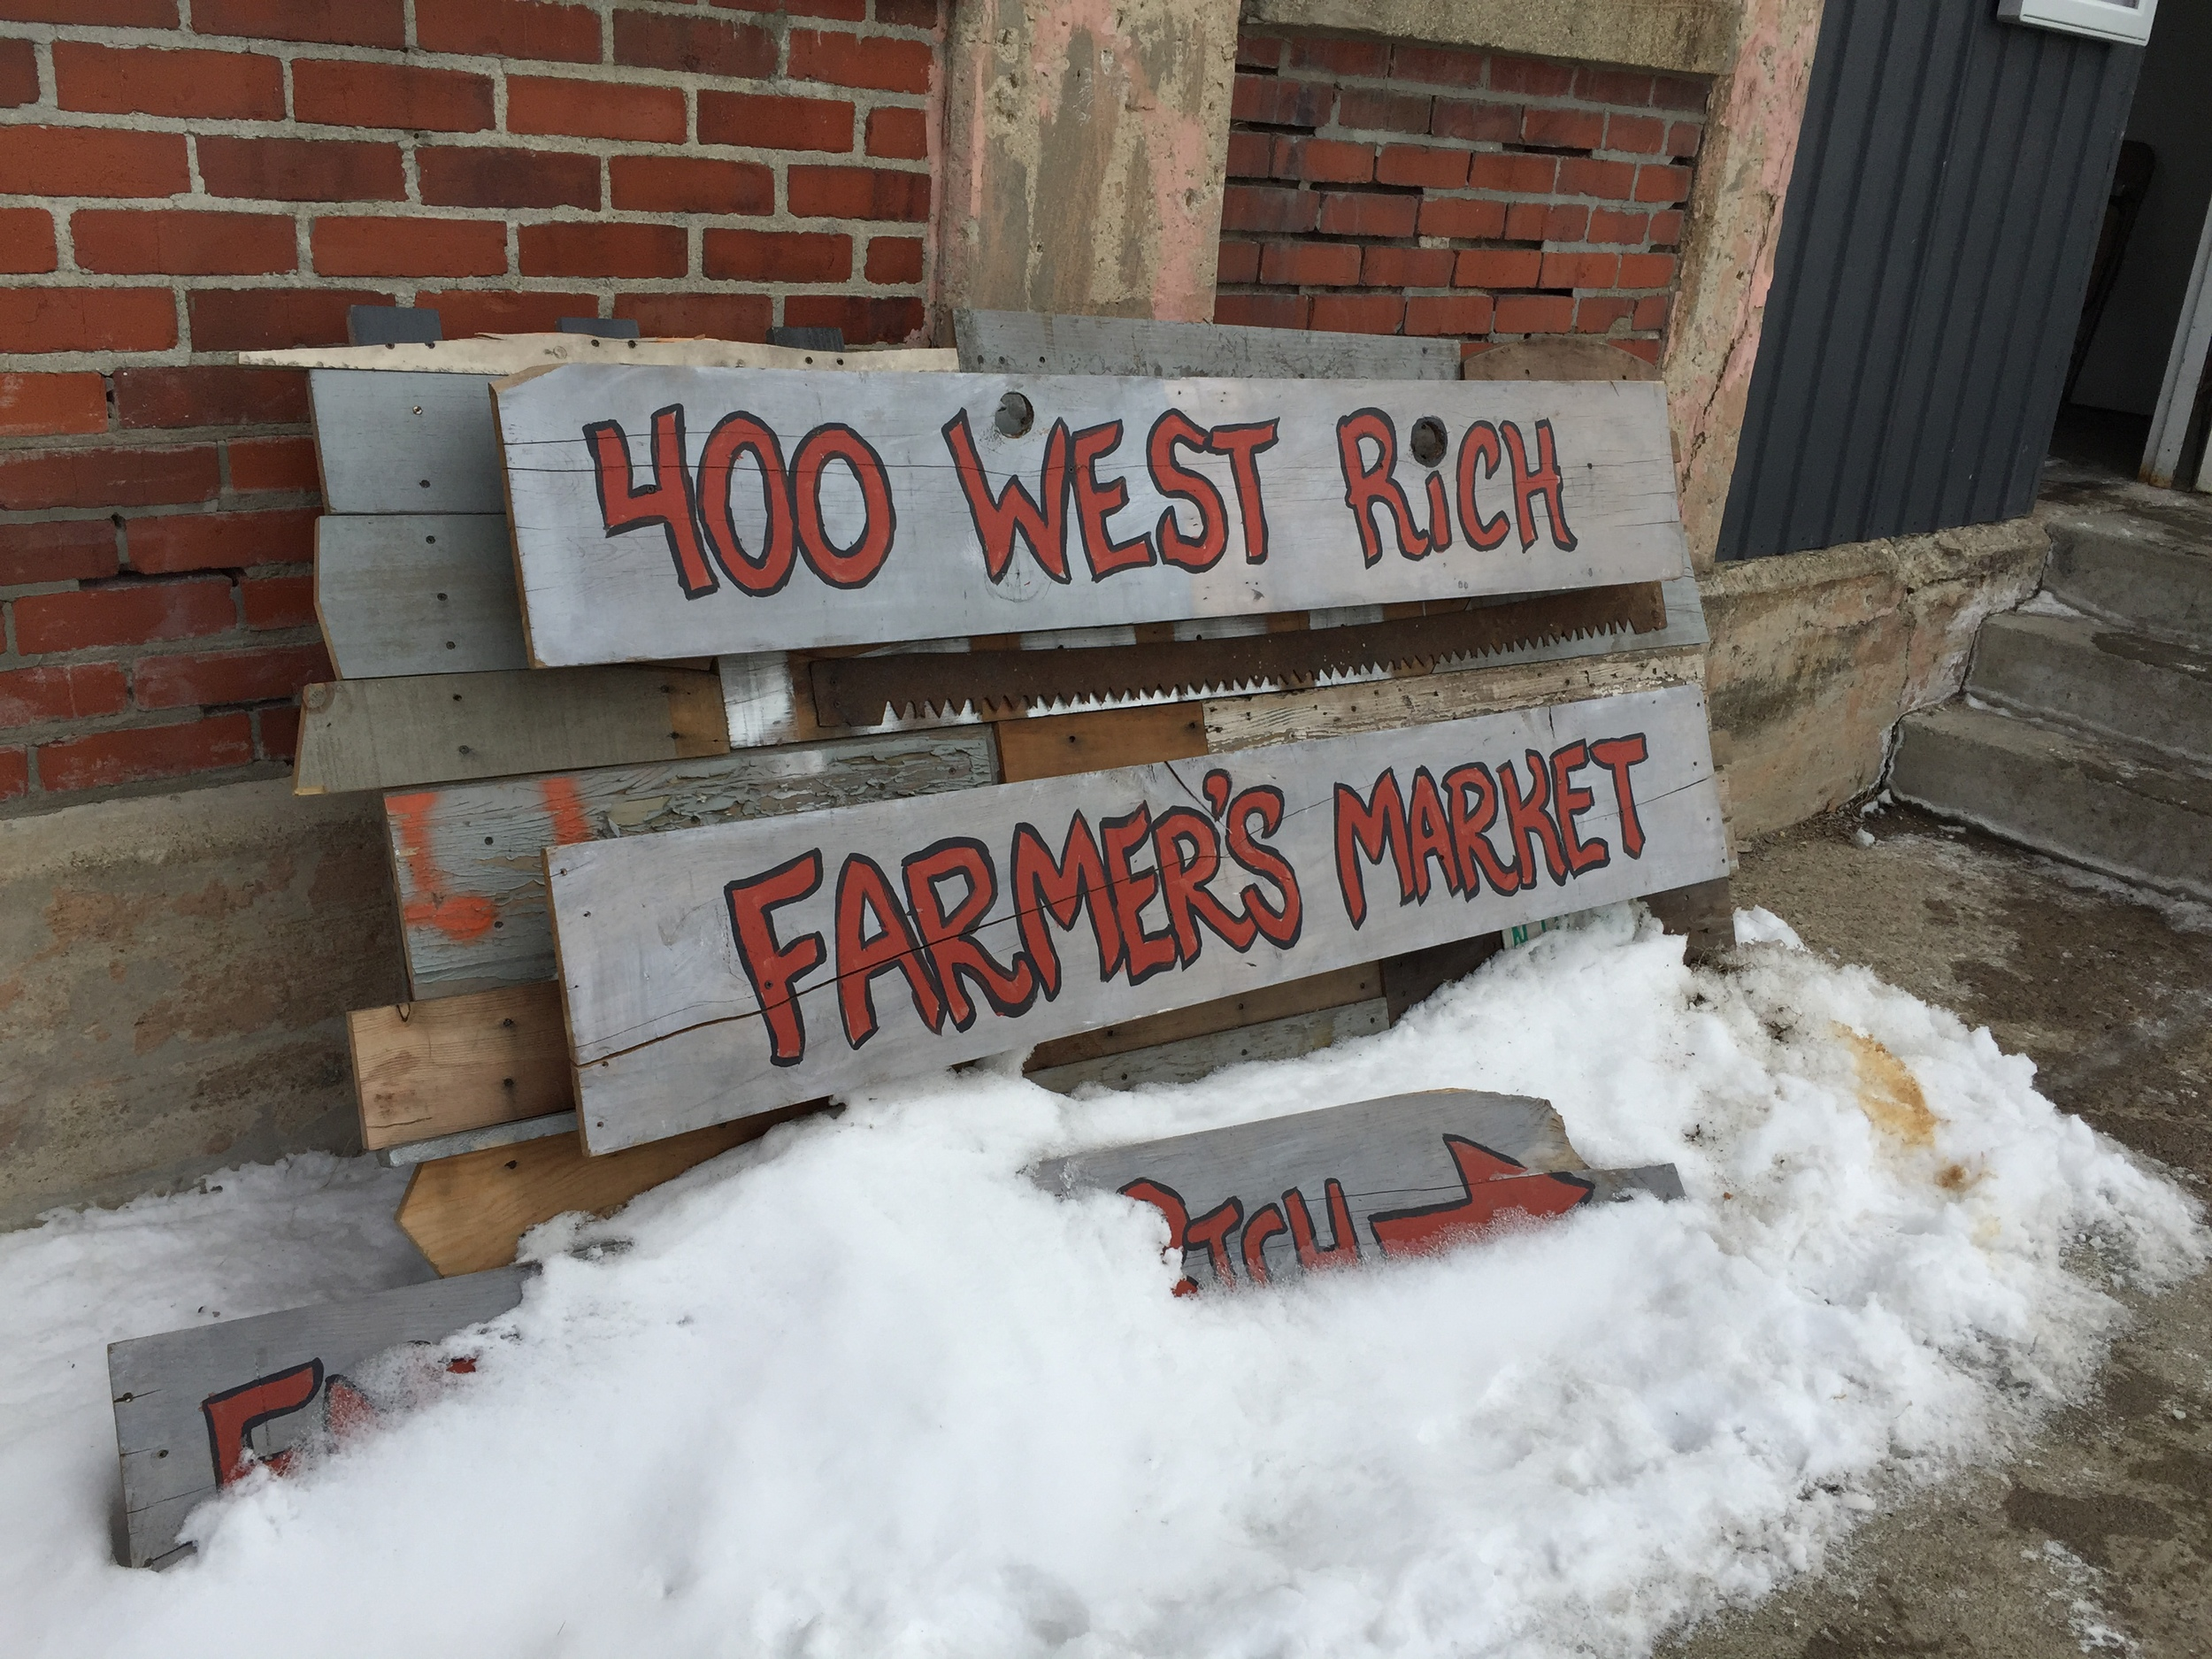 400 West Rich, Farmer's Market. Good things are happening in Franklinton!